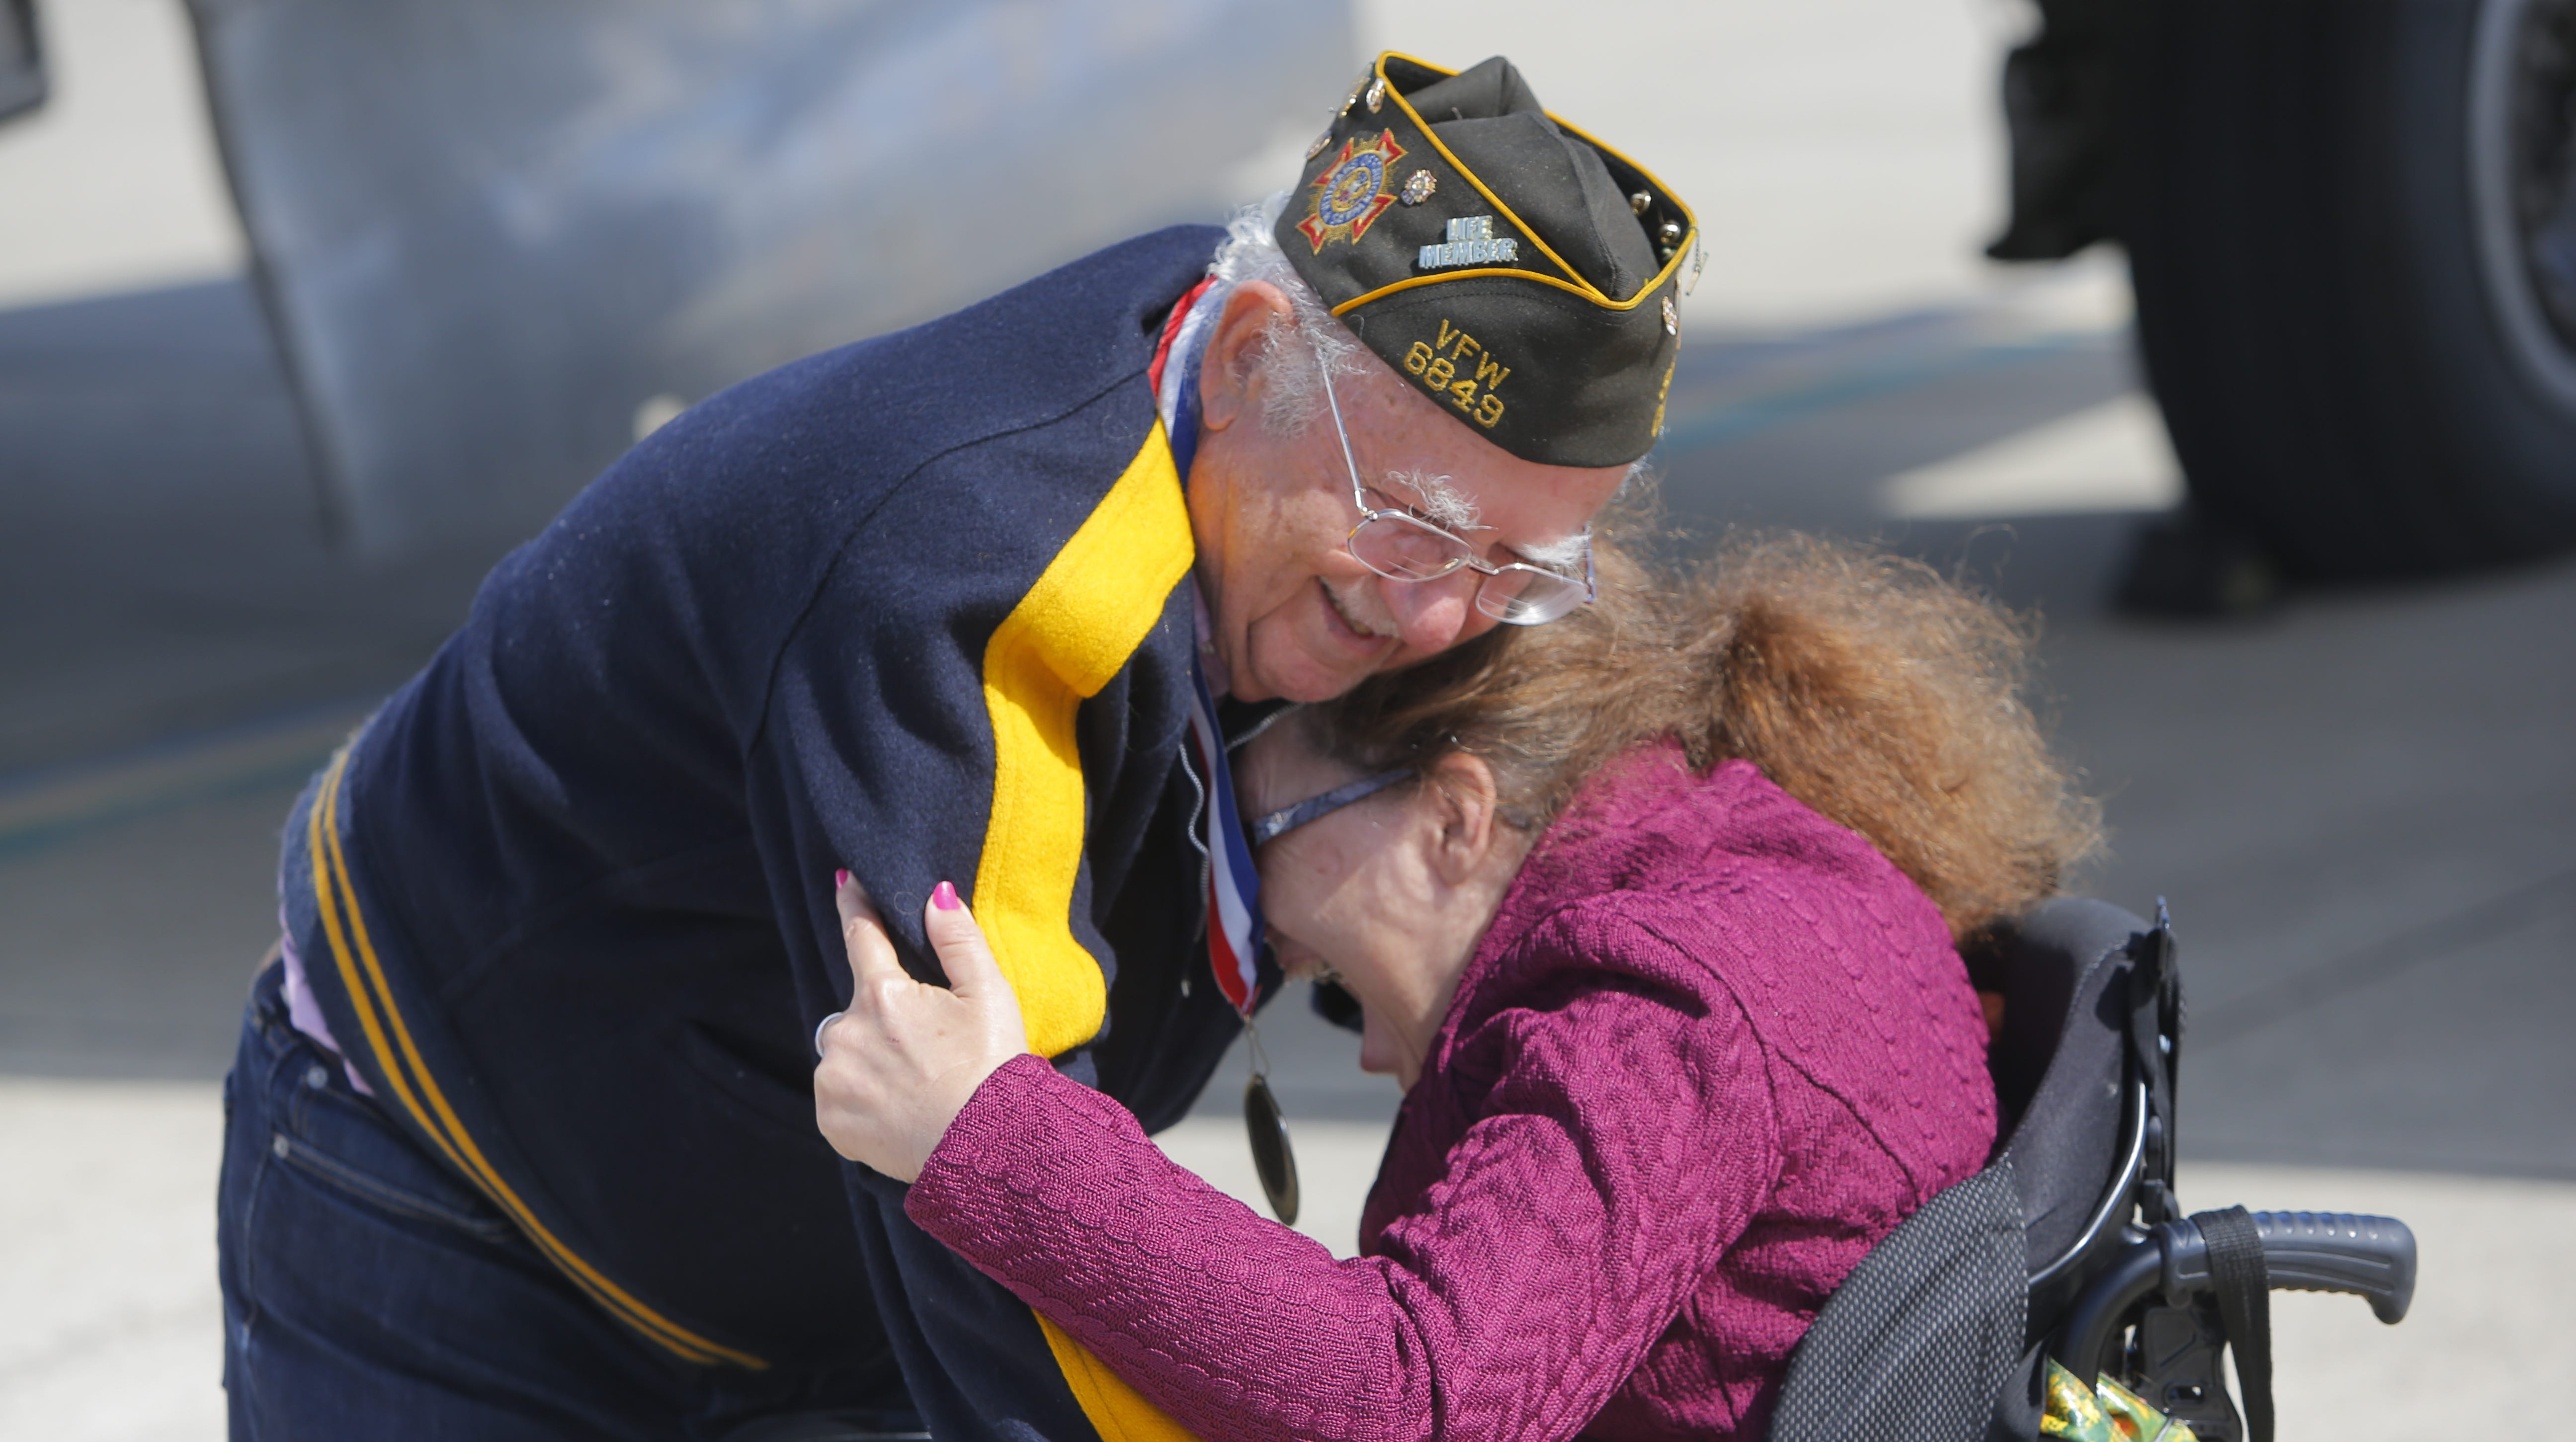 Ray Morasca, of Salinas, hugs his daughter Jeanine Morasca, after he flew in a B-17 Flying Fortress. The plane had come to Salinas for the California International Airshow this weekend. It arrived on Monday and took several passengers, including WWII veteran Ray Morasca, for a spin.